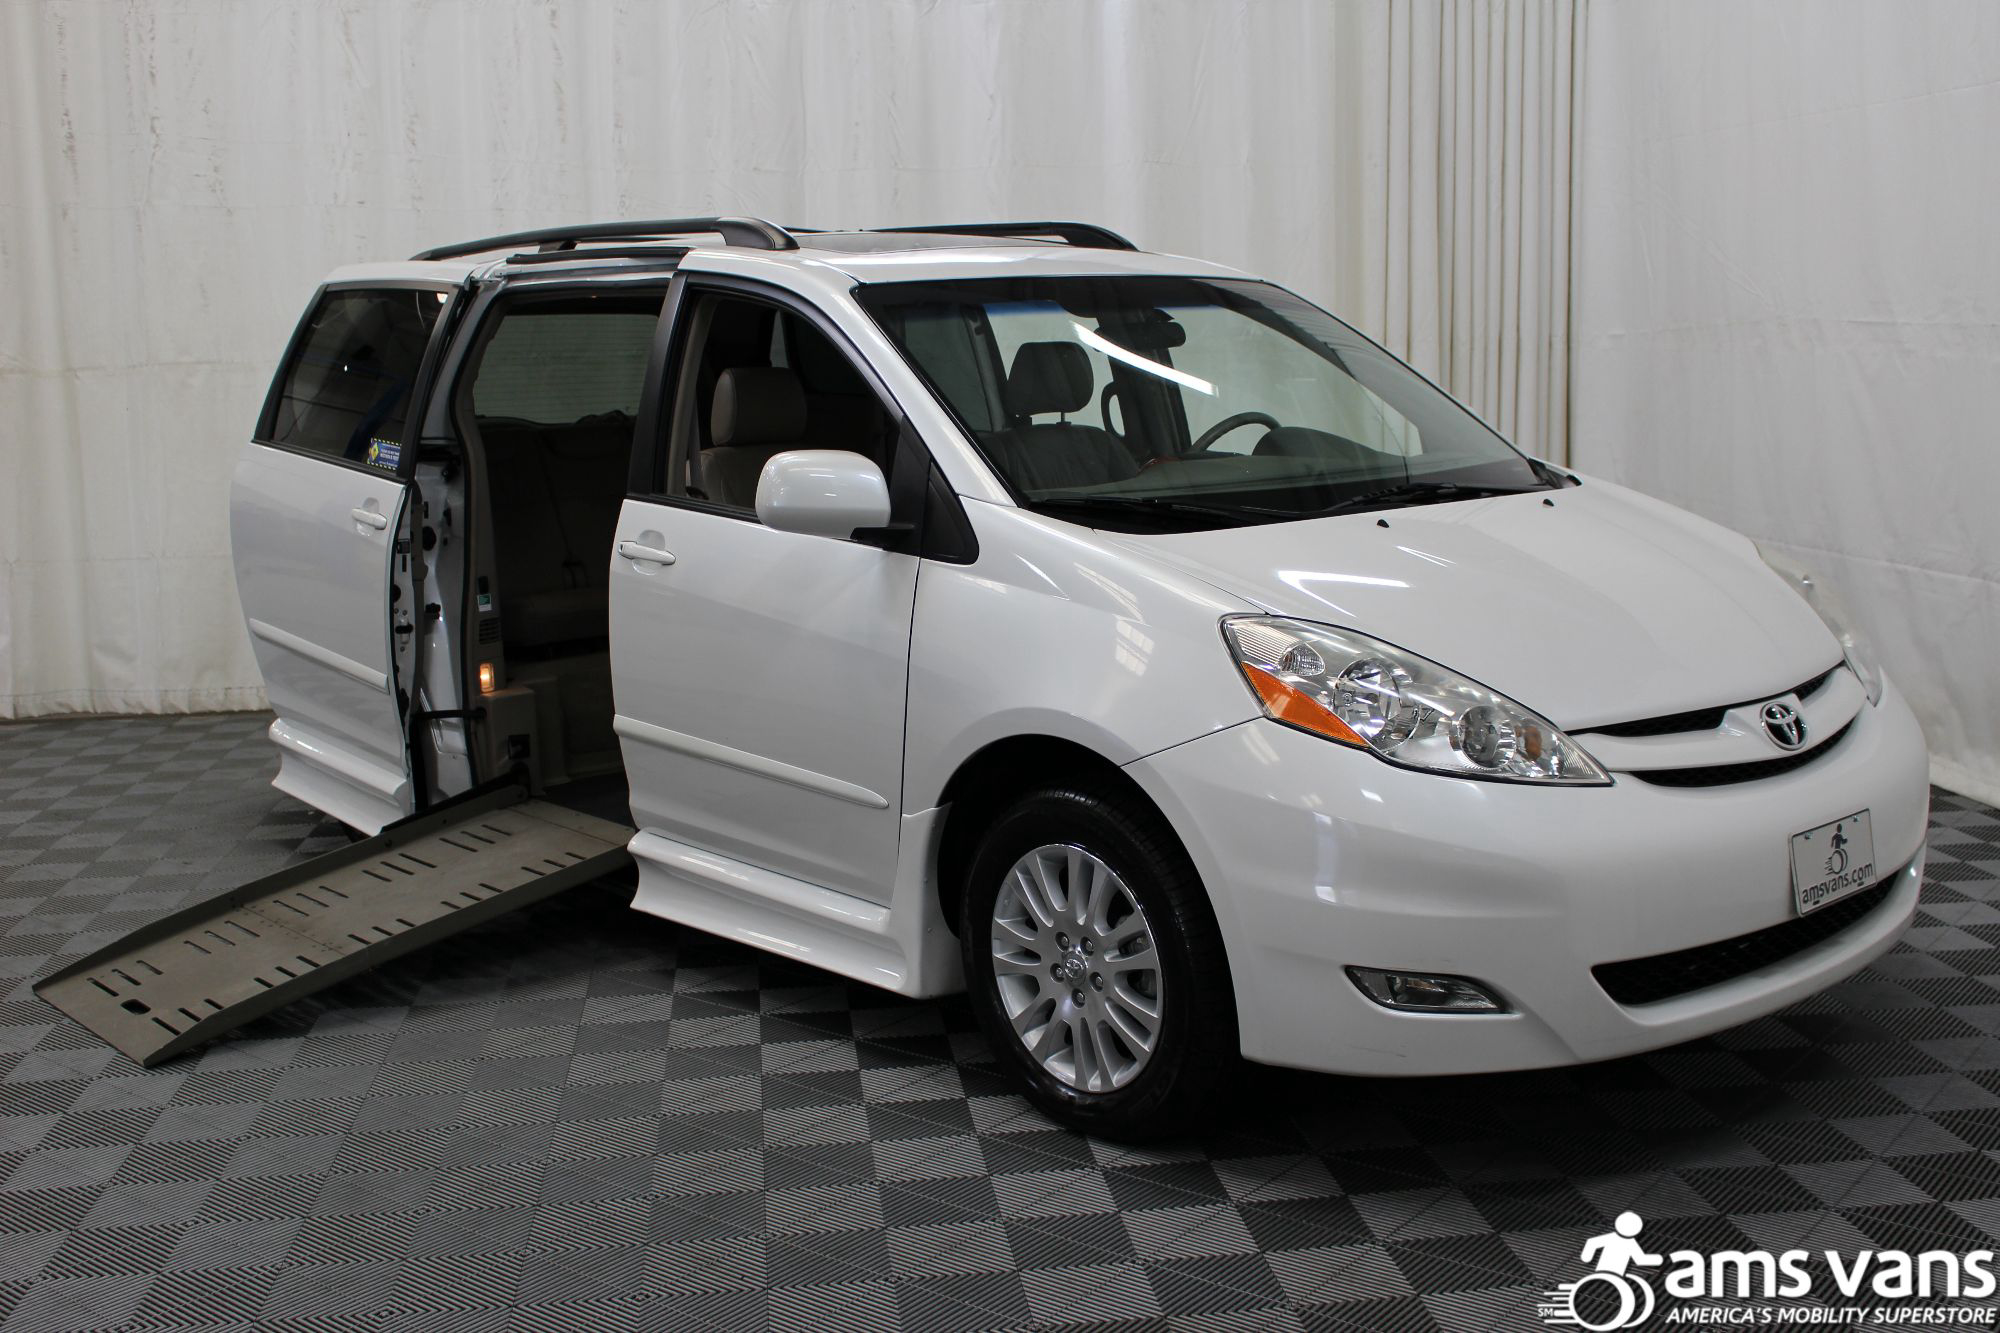 Toyota Sienna Service Manual: Low pitched horn